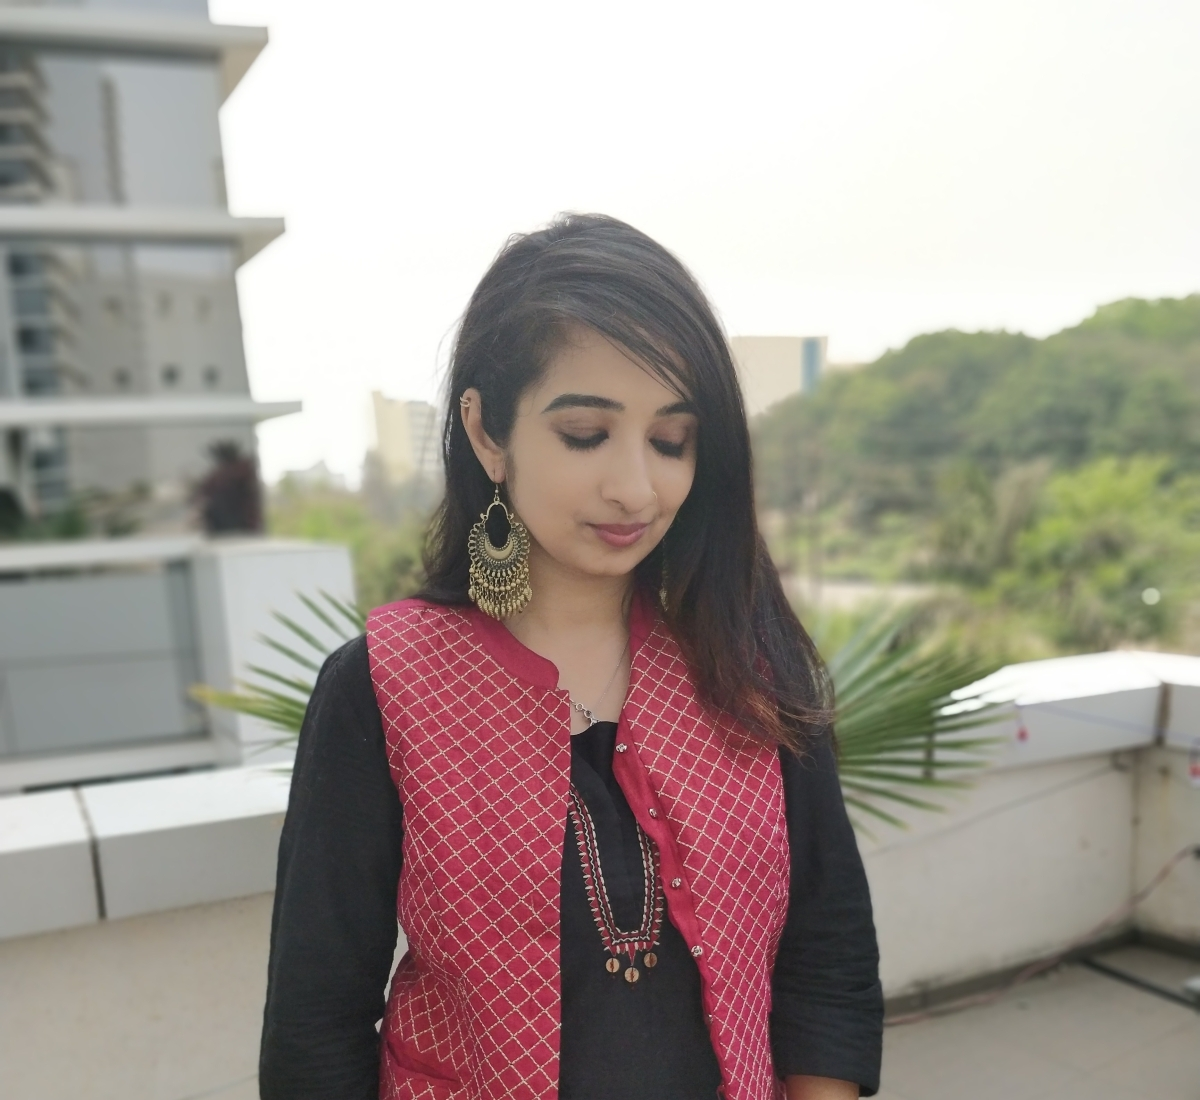 OOTD : Black Kurti and Maroon Jacket Outfit